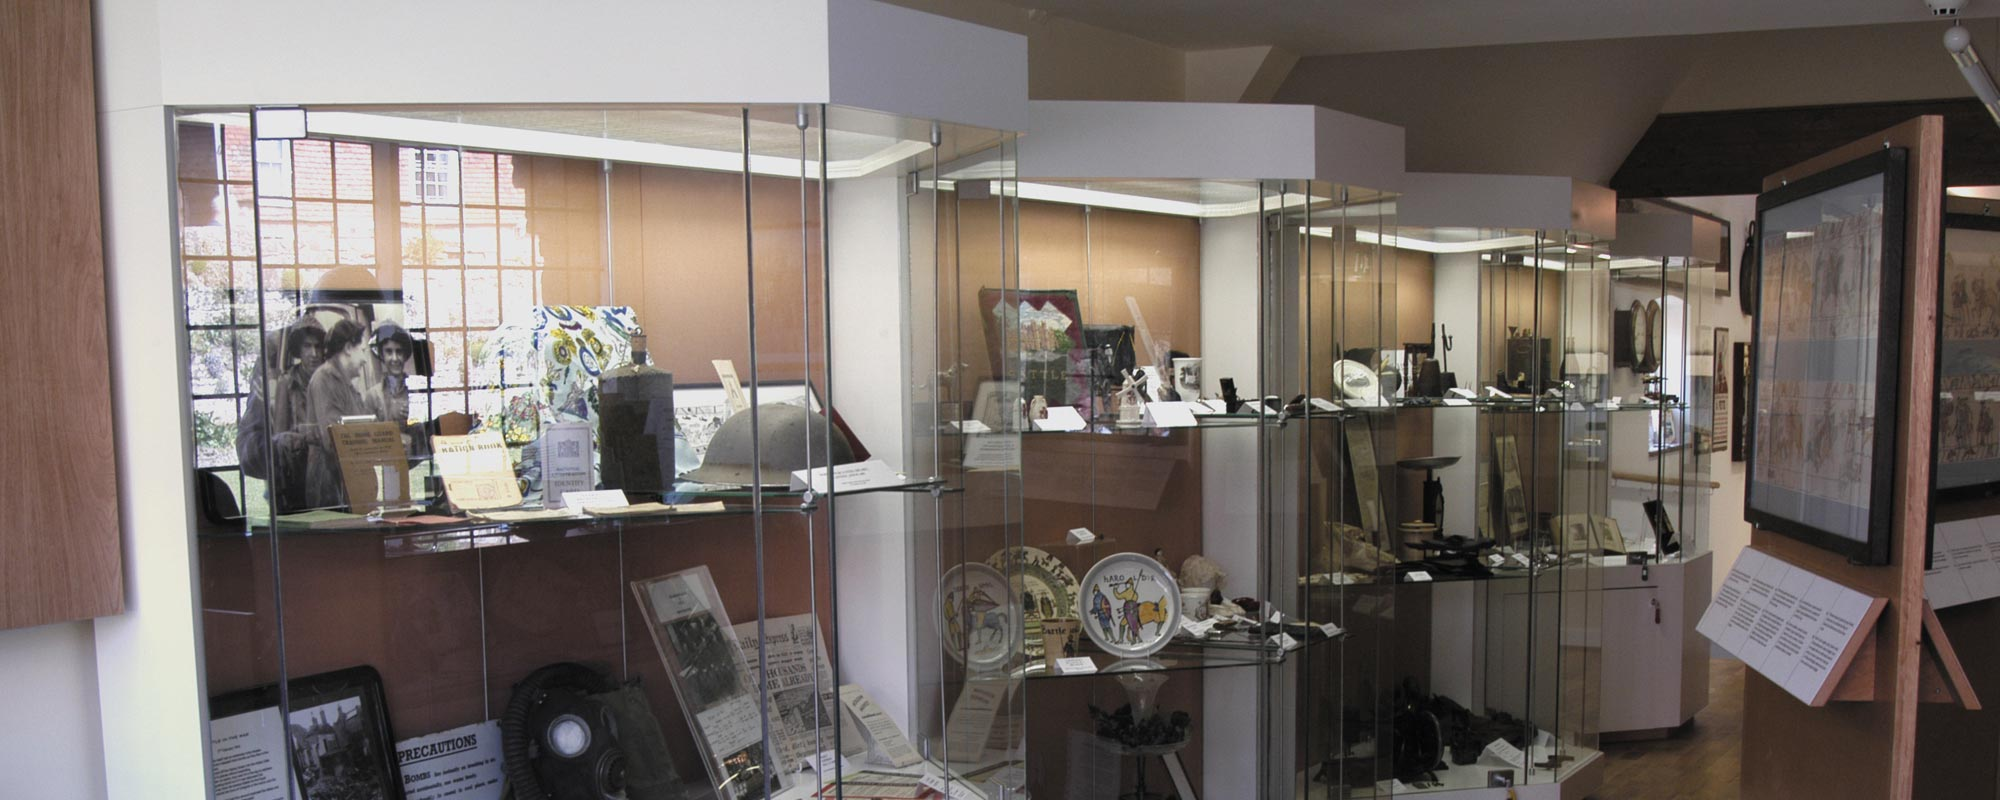 View of the collectables being displayed